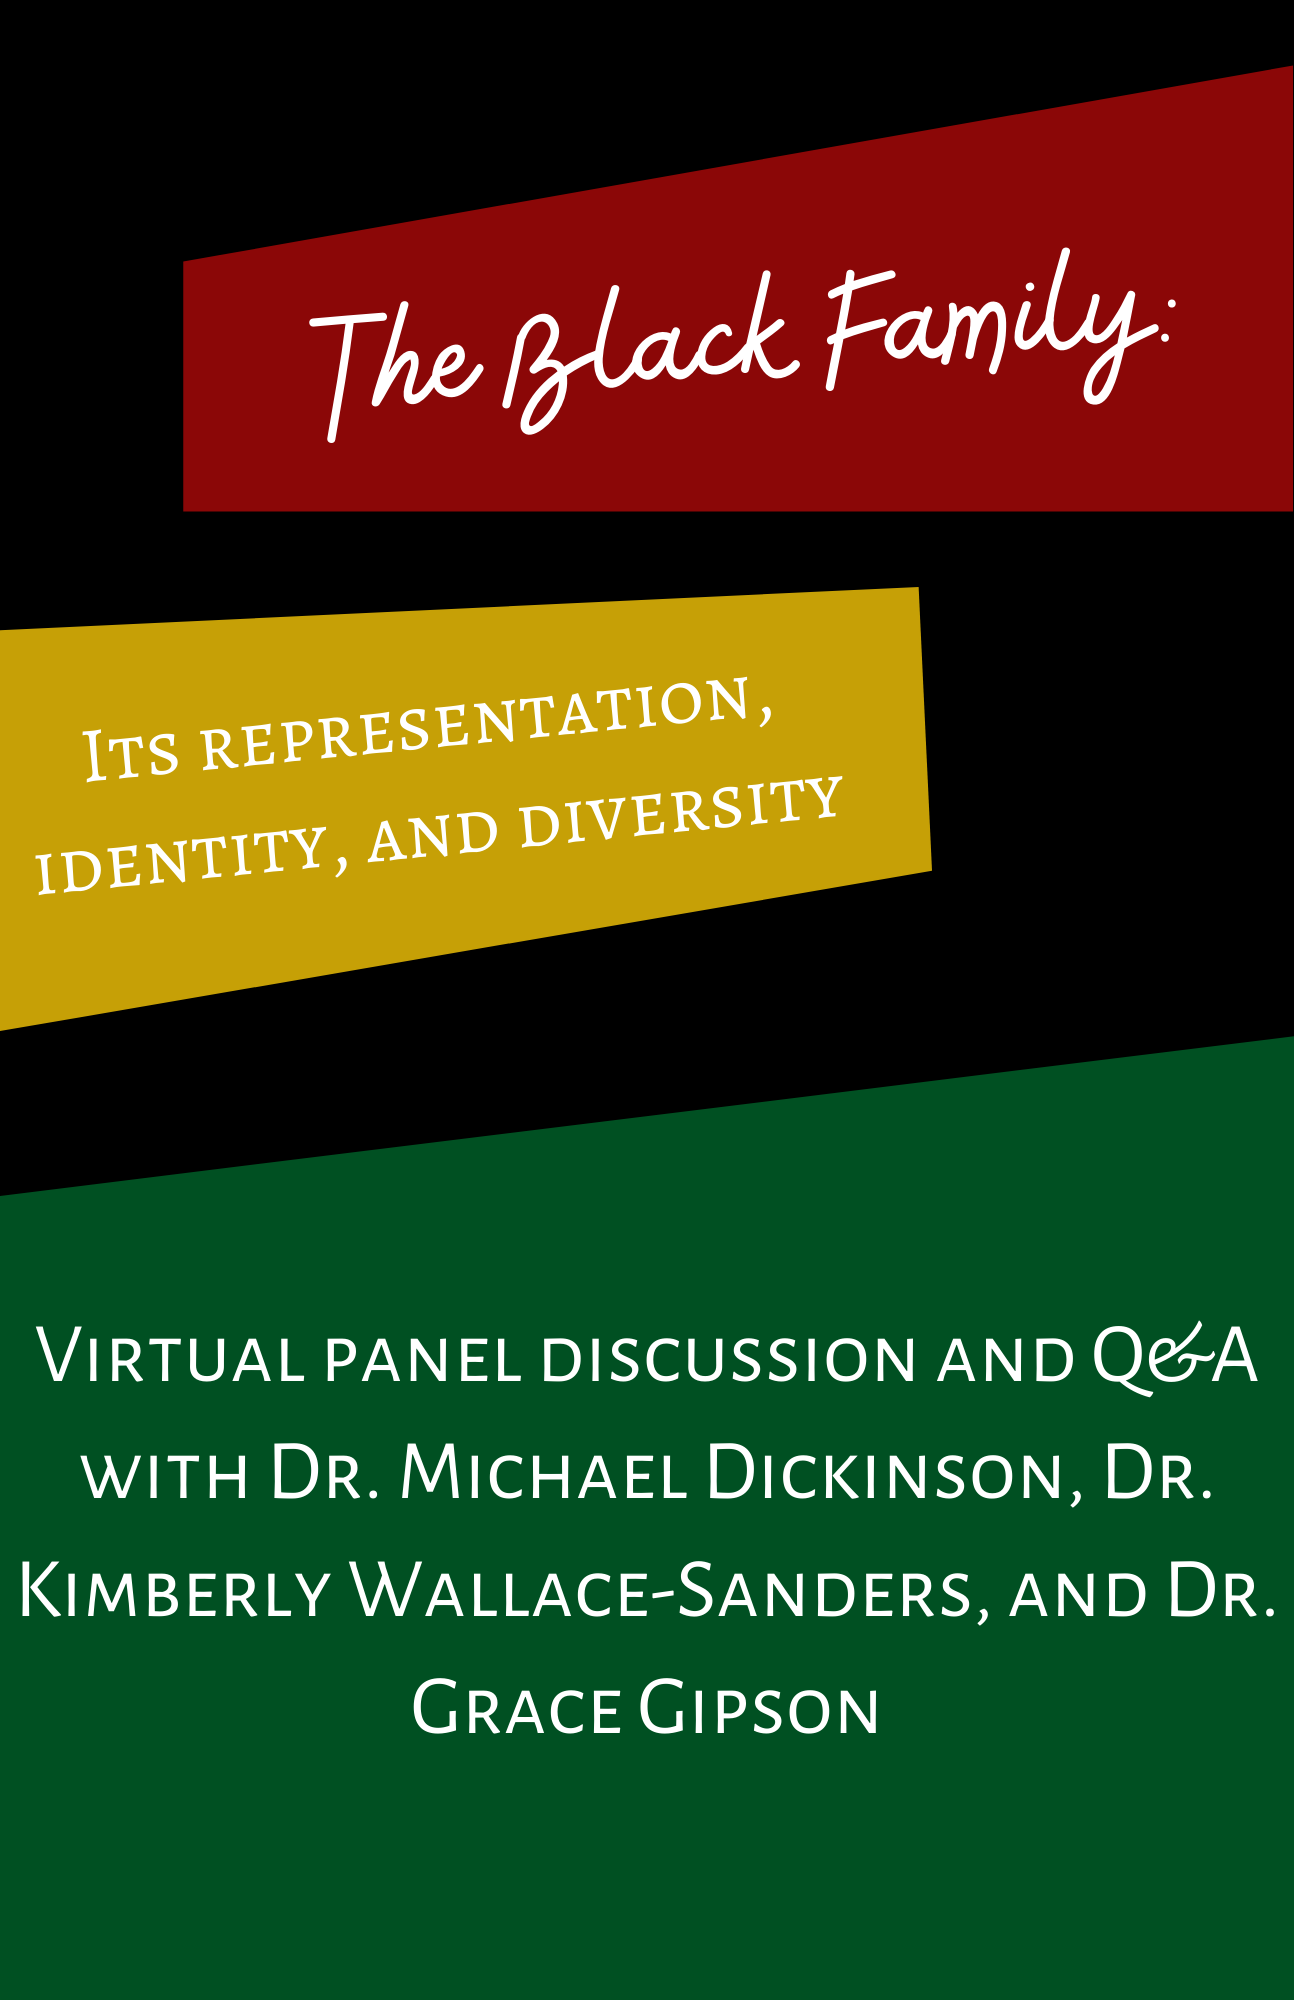 """""""The Black family and its representation, identity, and diversity"""": A discussion with Michael Dickinson, Kimberly Wallace-Sanders, and Grace Gipson"""